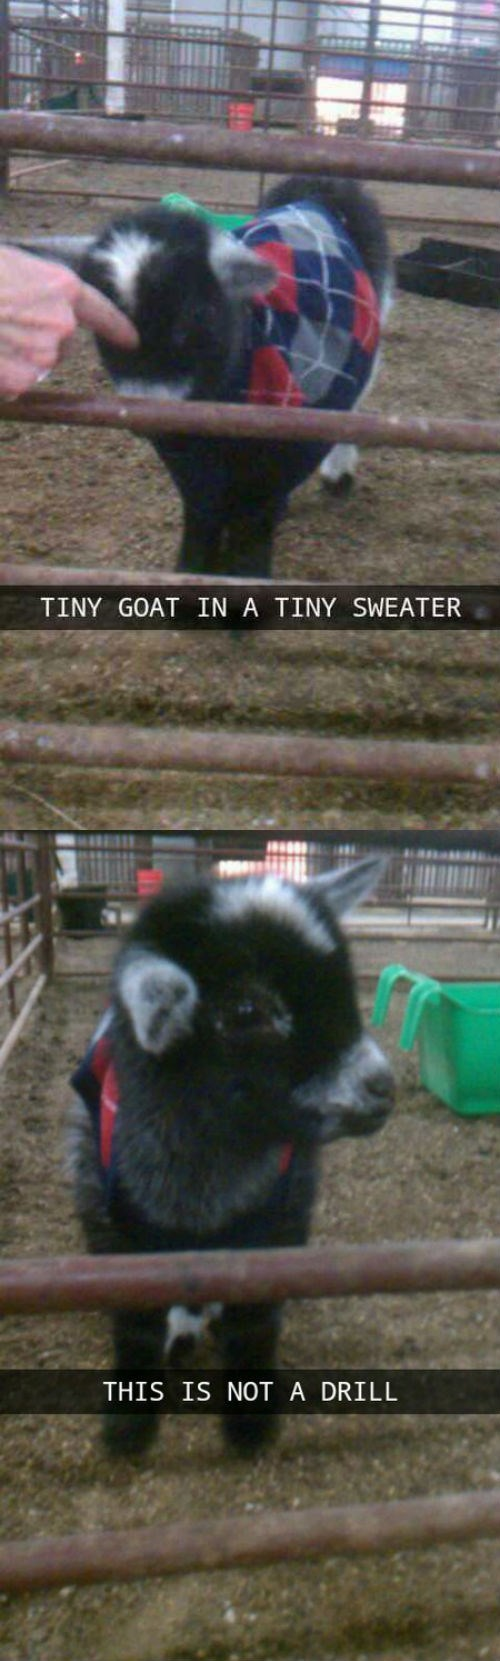 goat baby goat sweater animals g rated poorly dressed